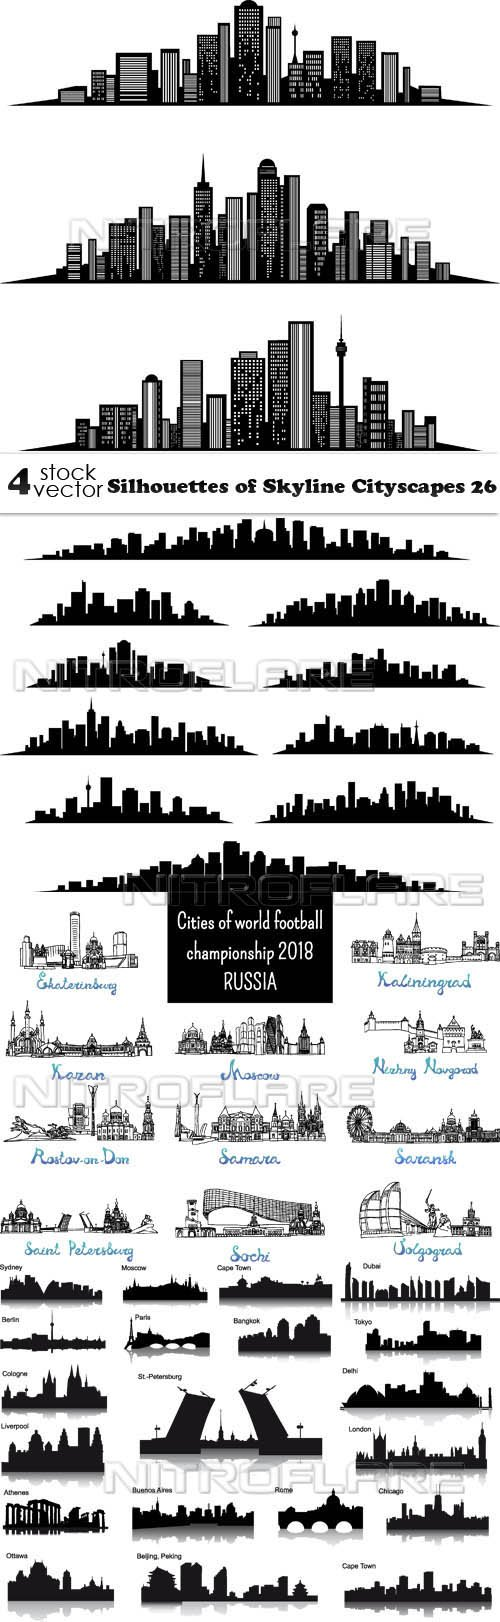 Vectors - Silhouettes of Skyline Cityscapes 26